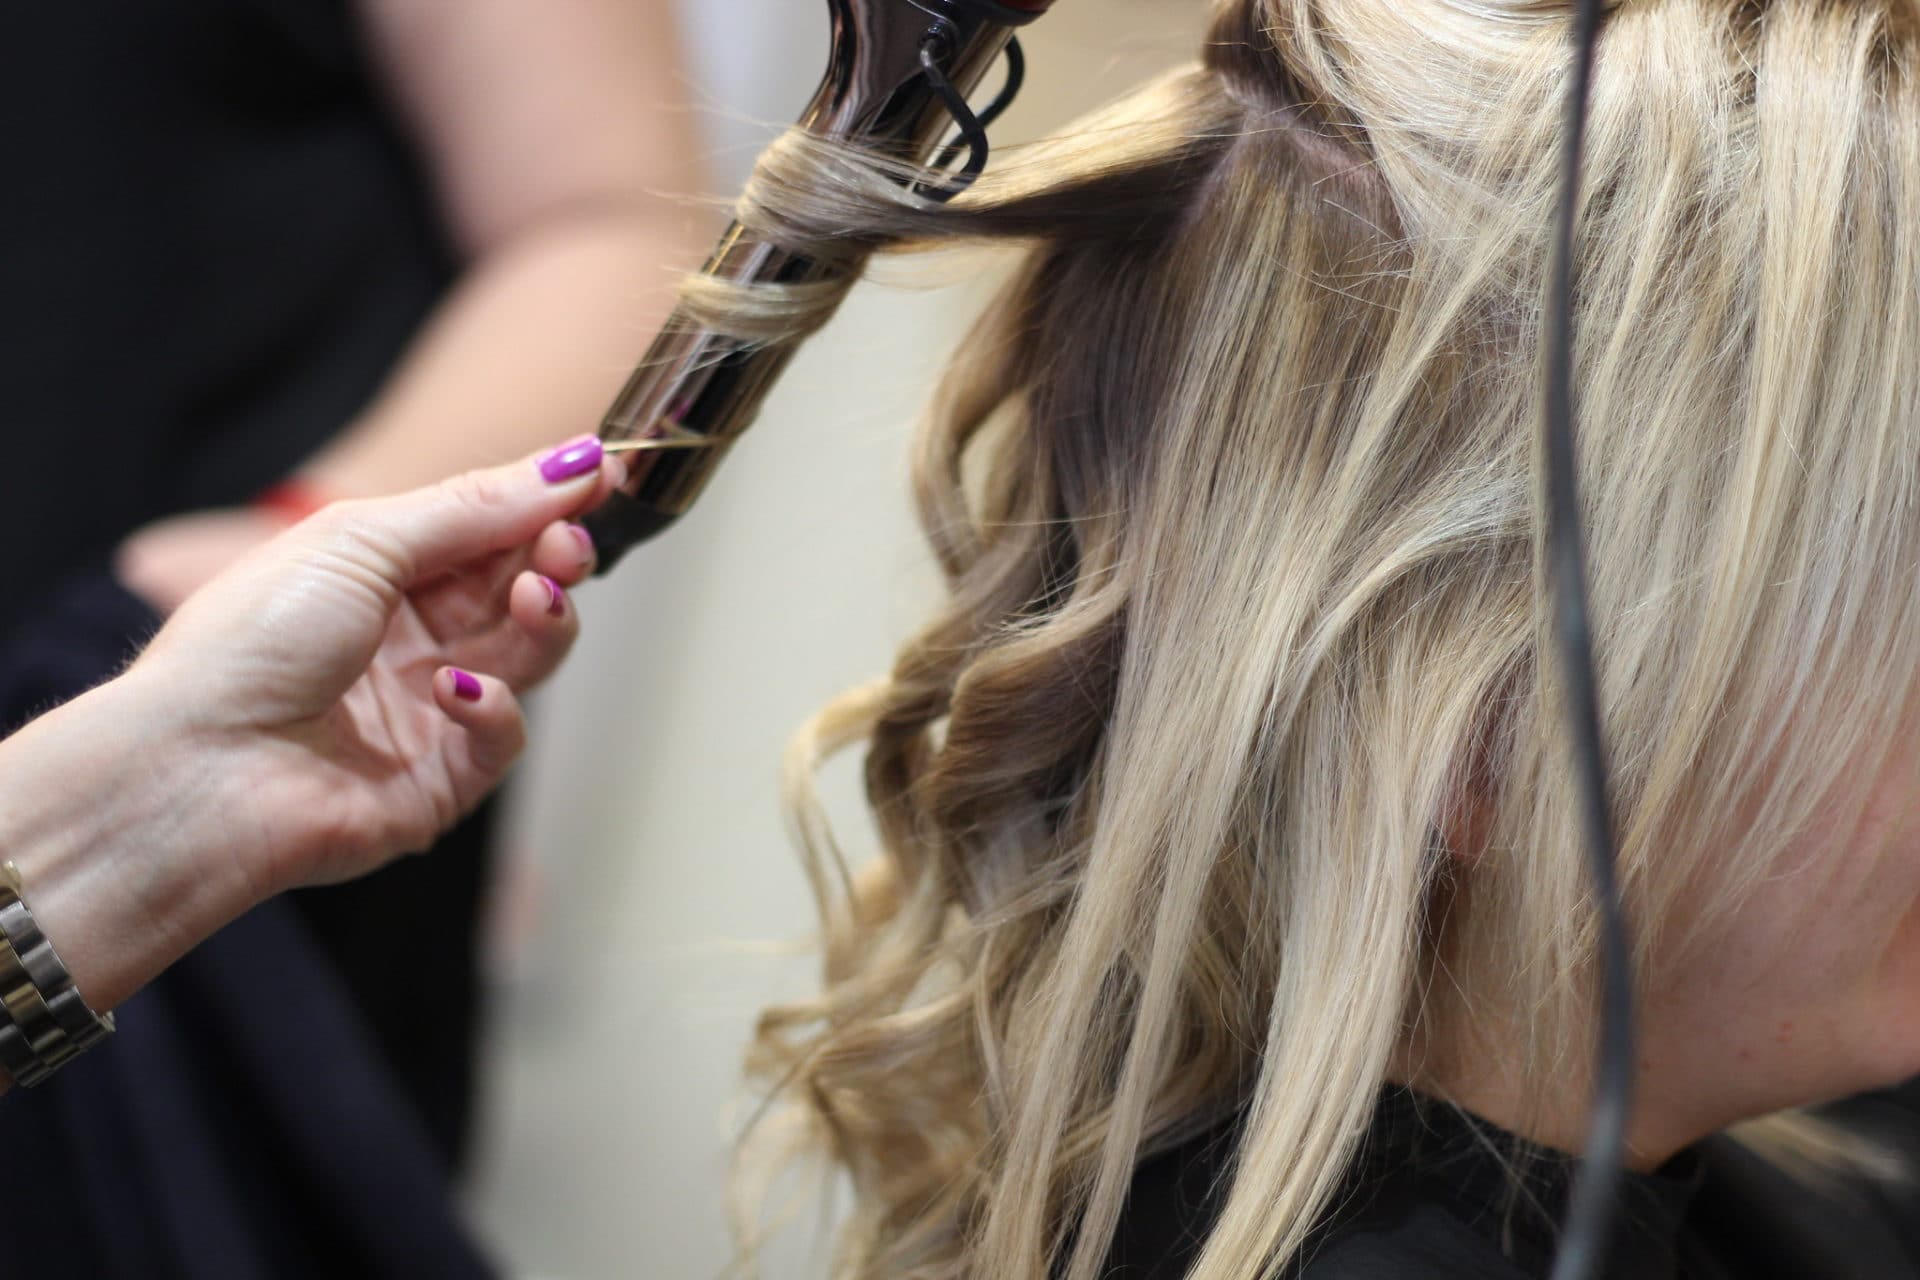 A person is curling the blonde hair of a woman